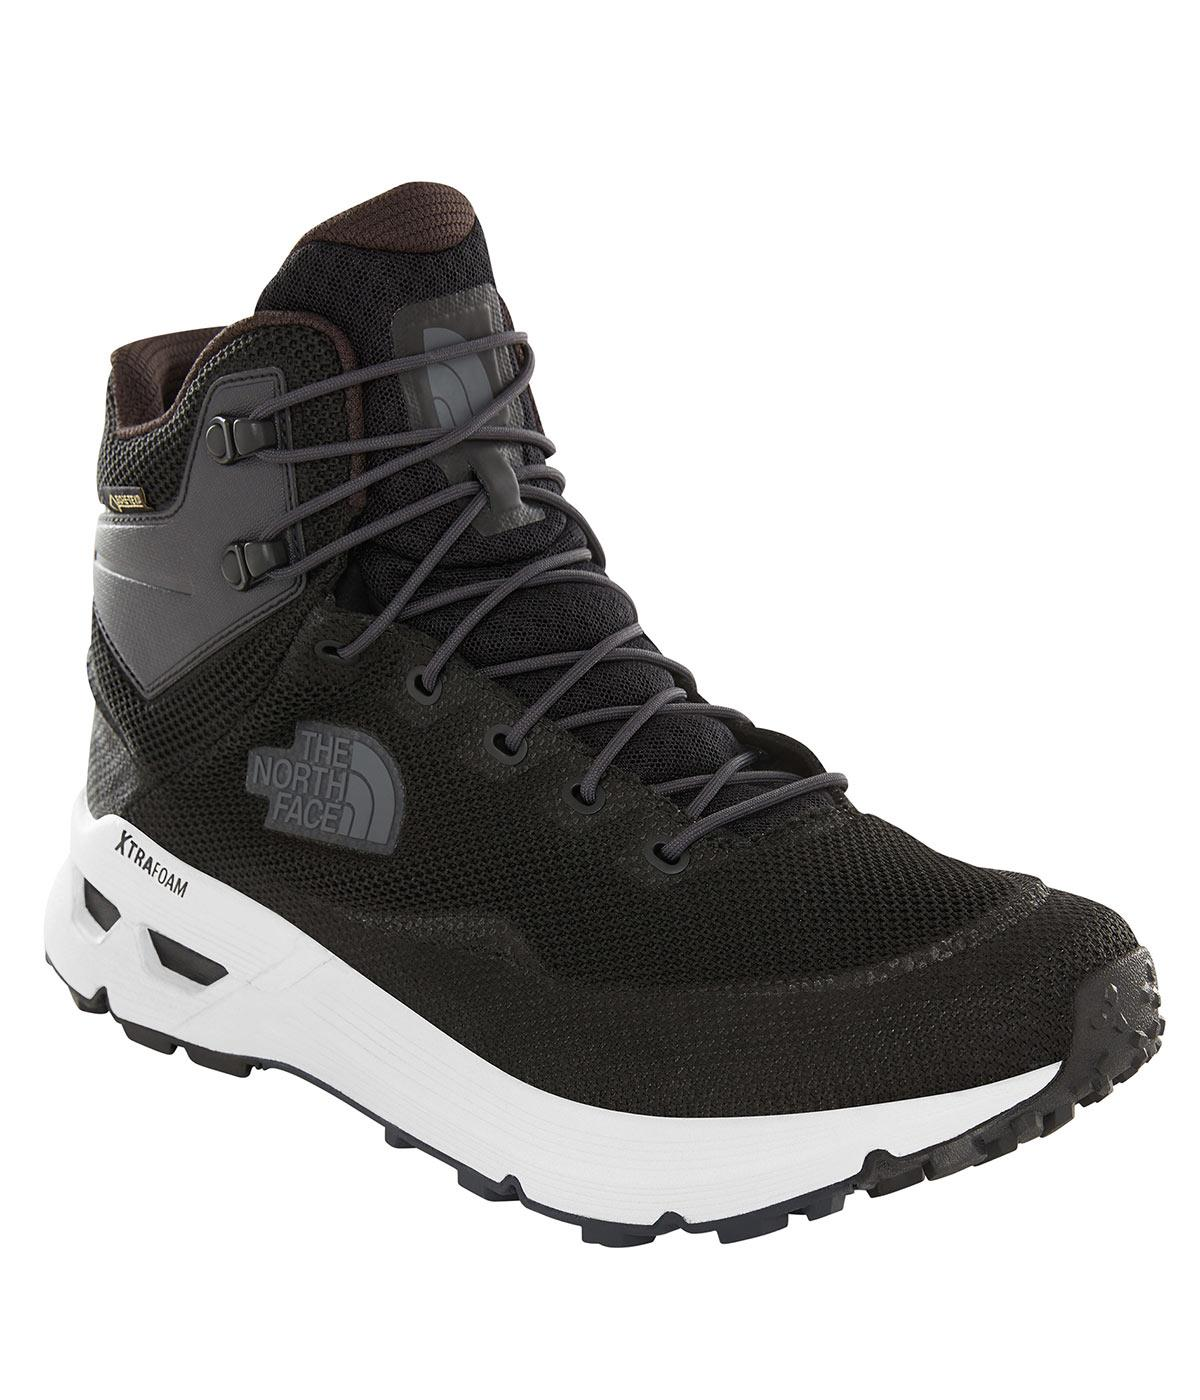 The North Face M Safien Mid Gtx Nf0A3Rdcca01 Bot